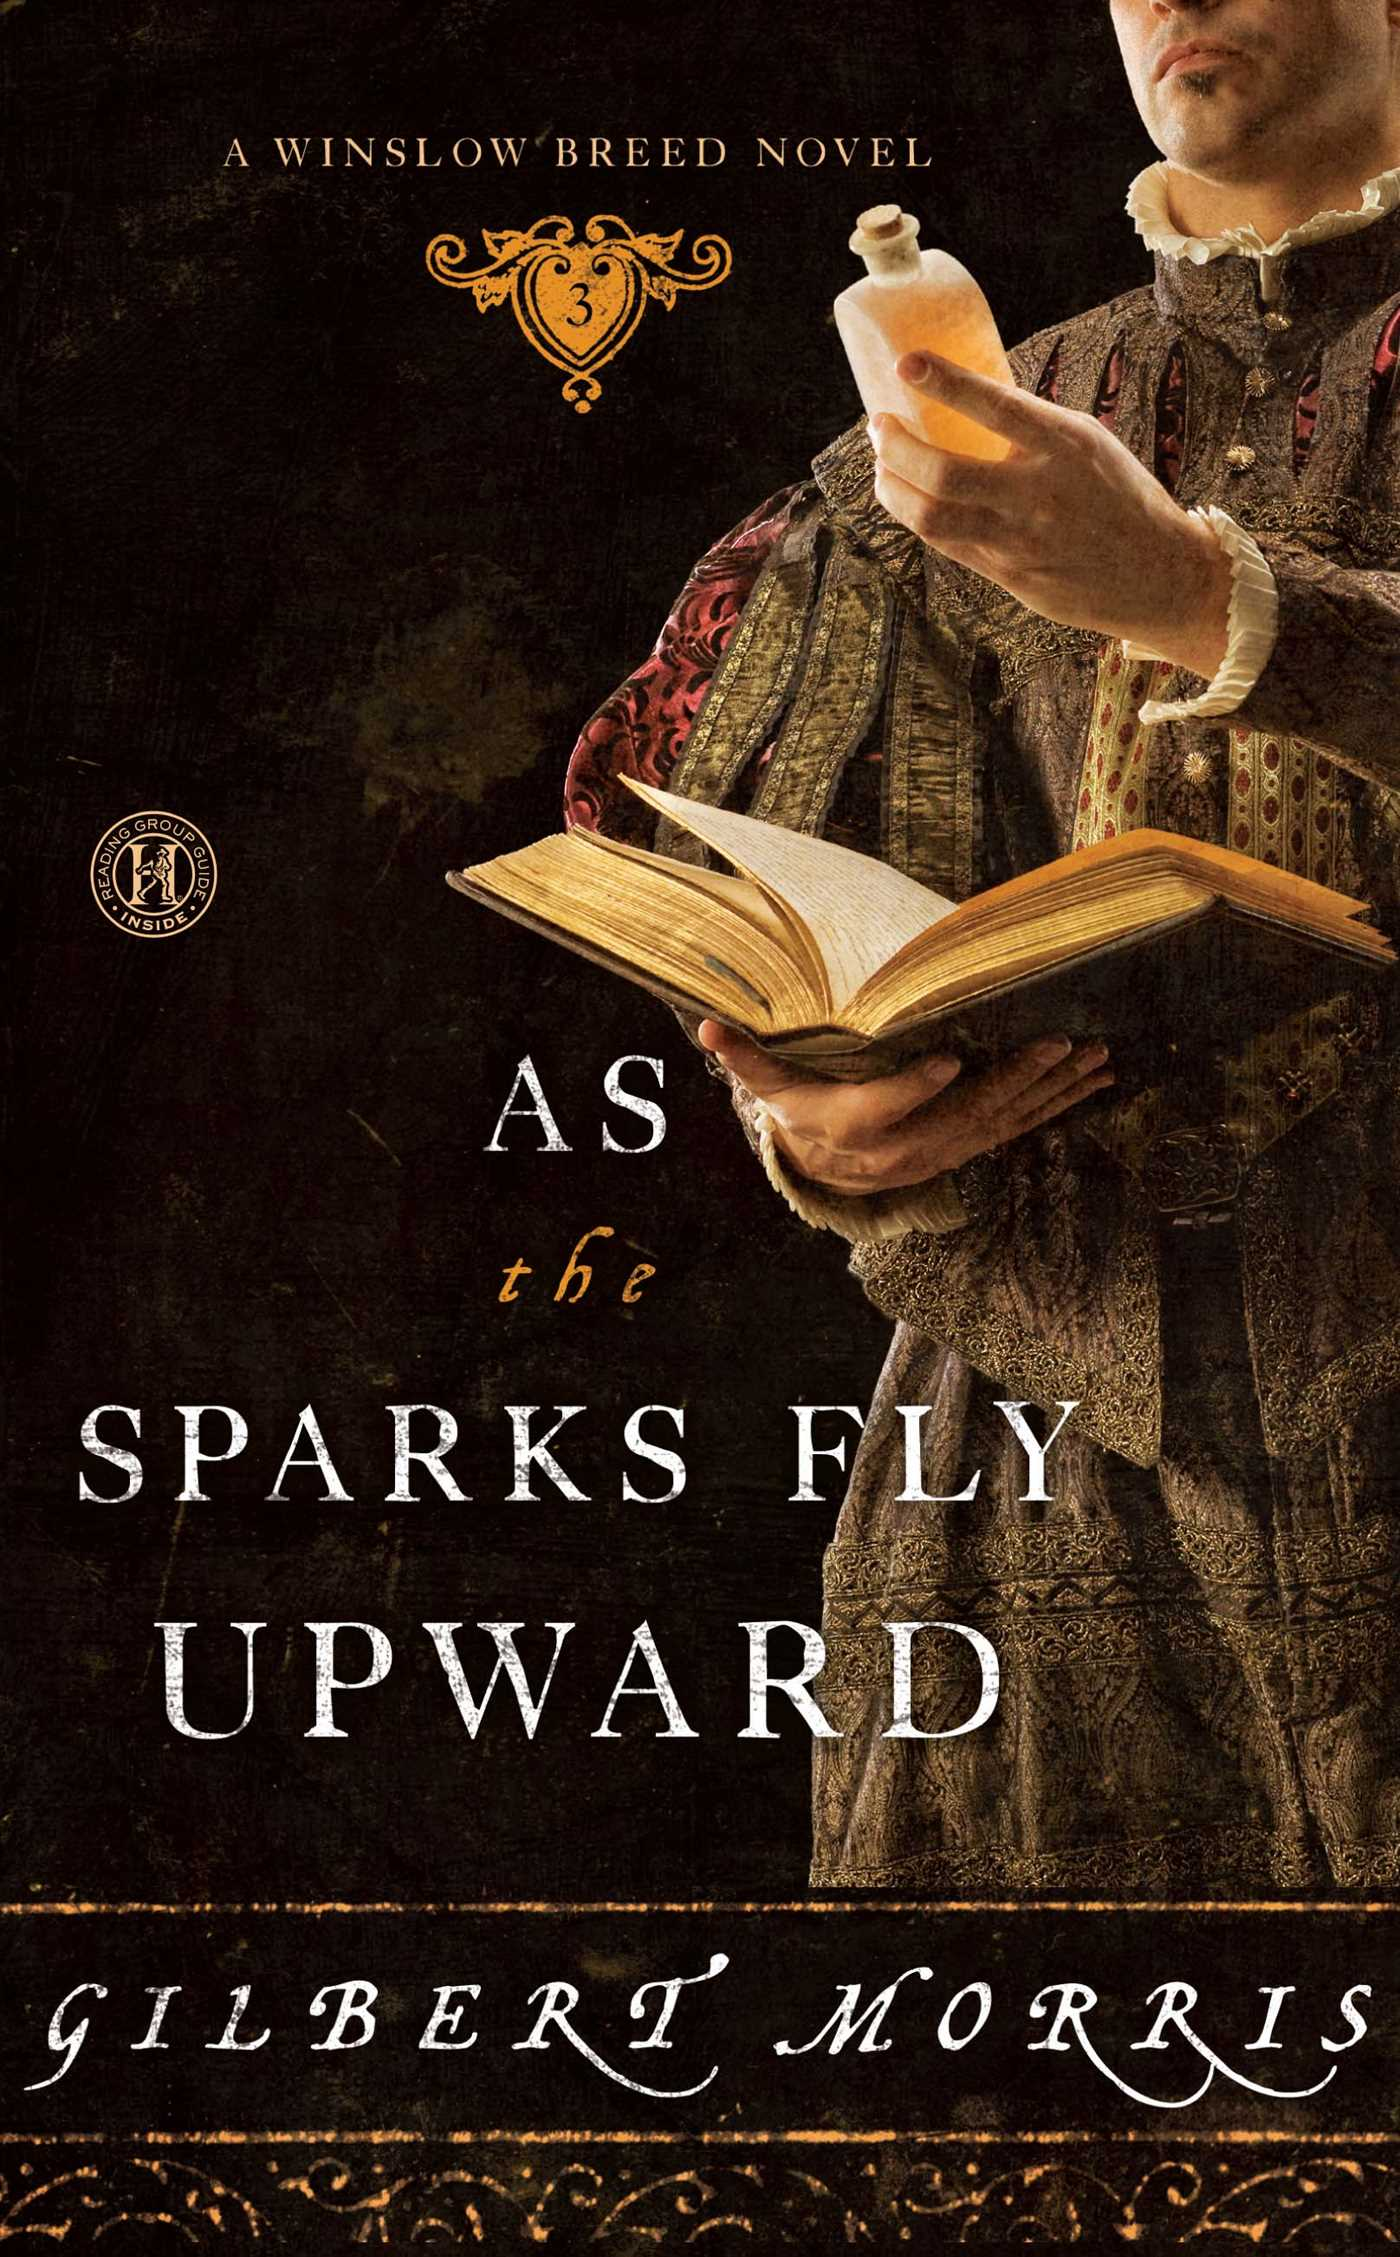 As-the-sparks-fly-upward-9781416587484_hr